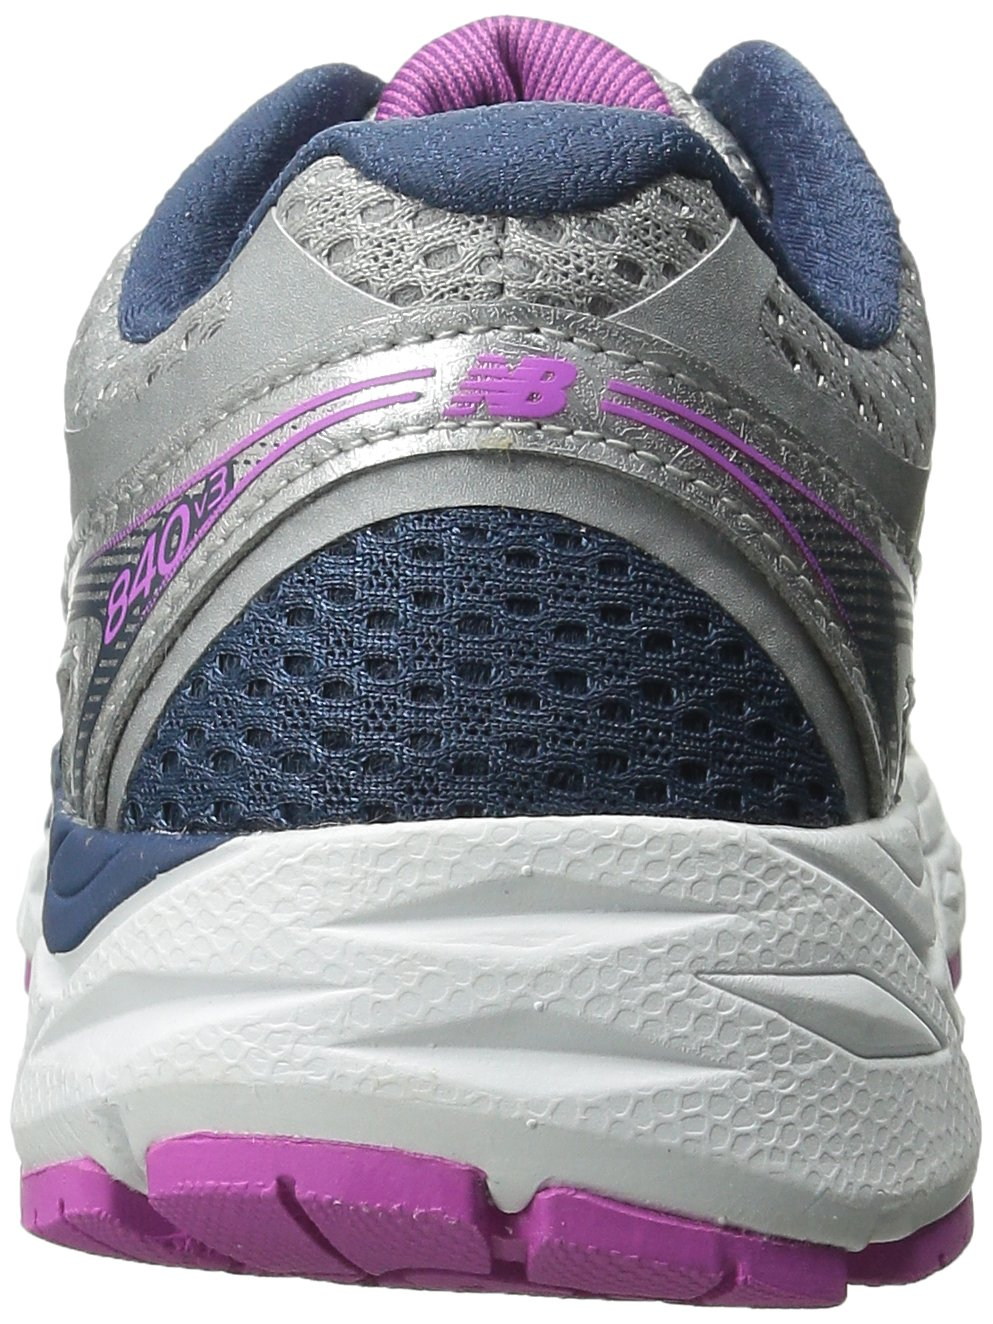 New Balance Women's W840V3 Running Shoe B00V3NB3Y0 12 B(M) US|Silver/Navy